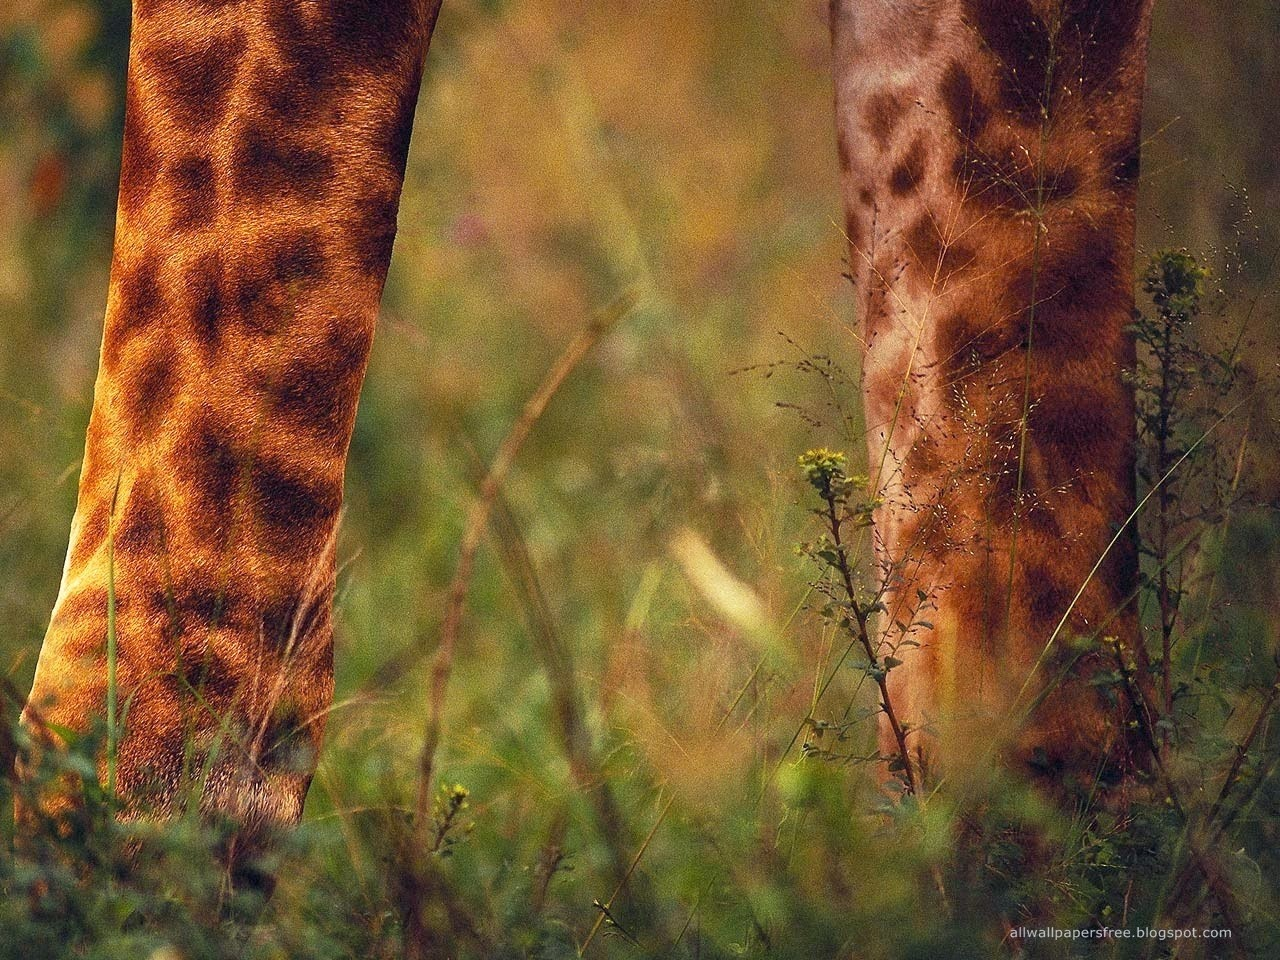 picture of giraffes legs